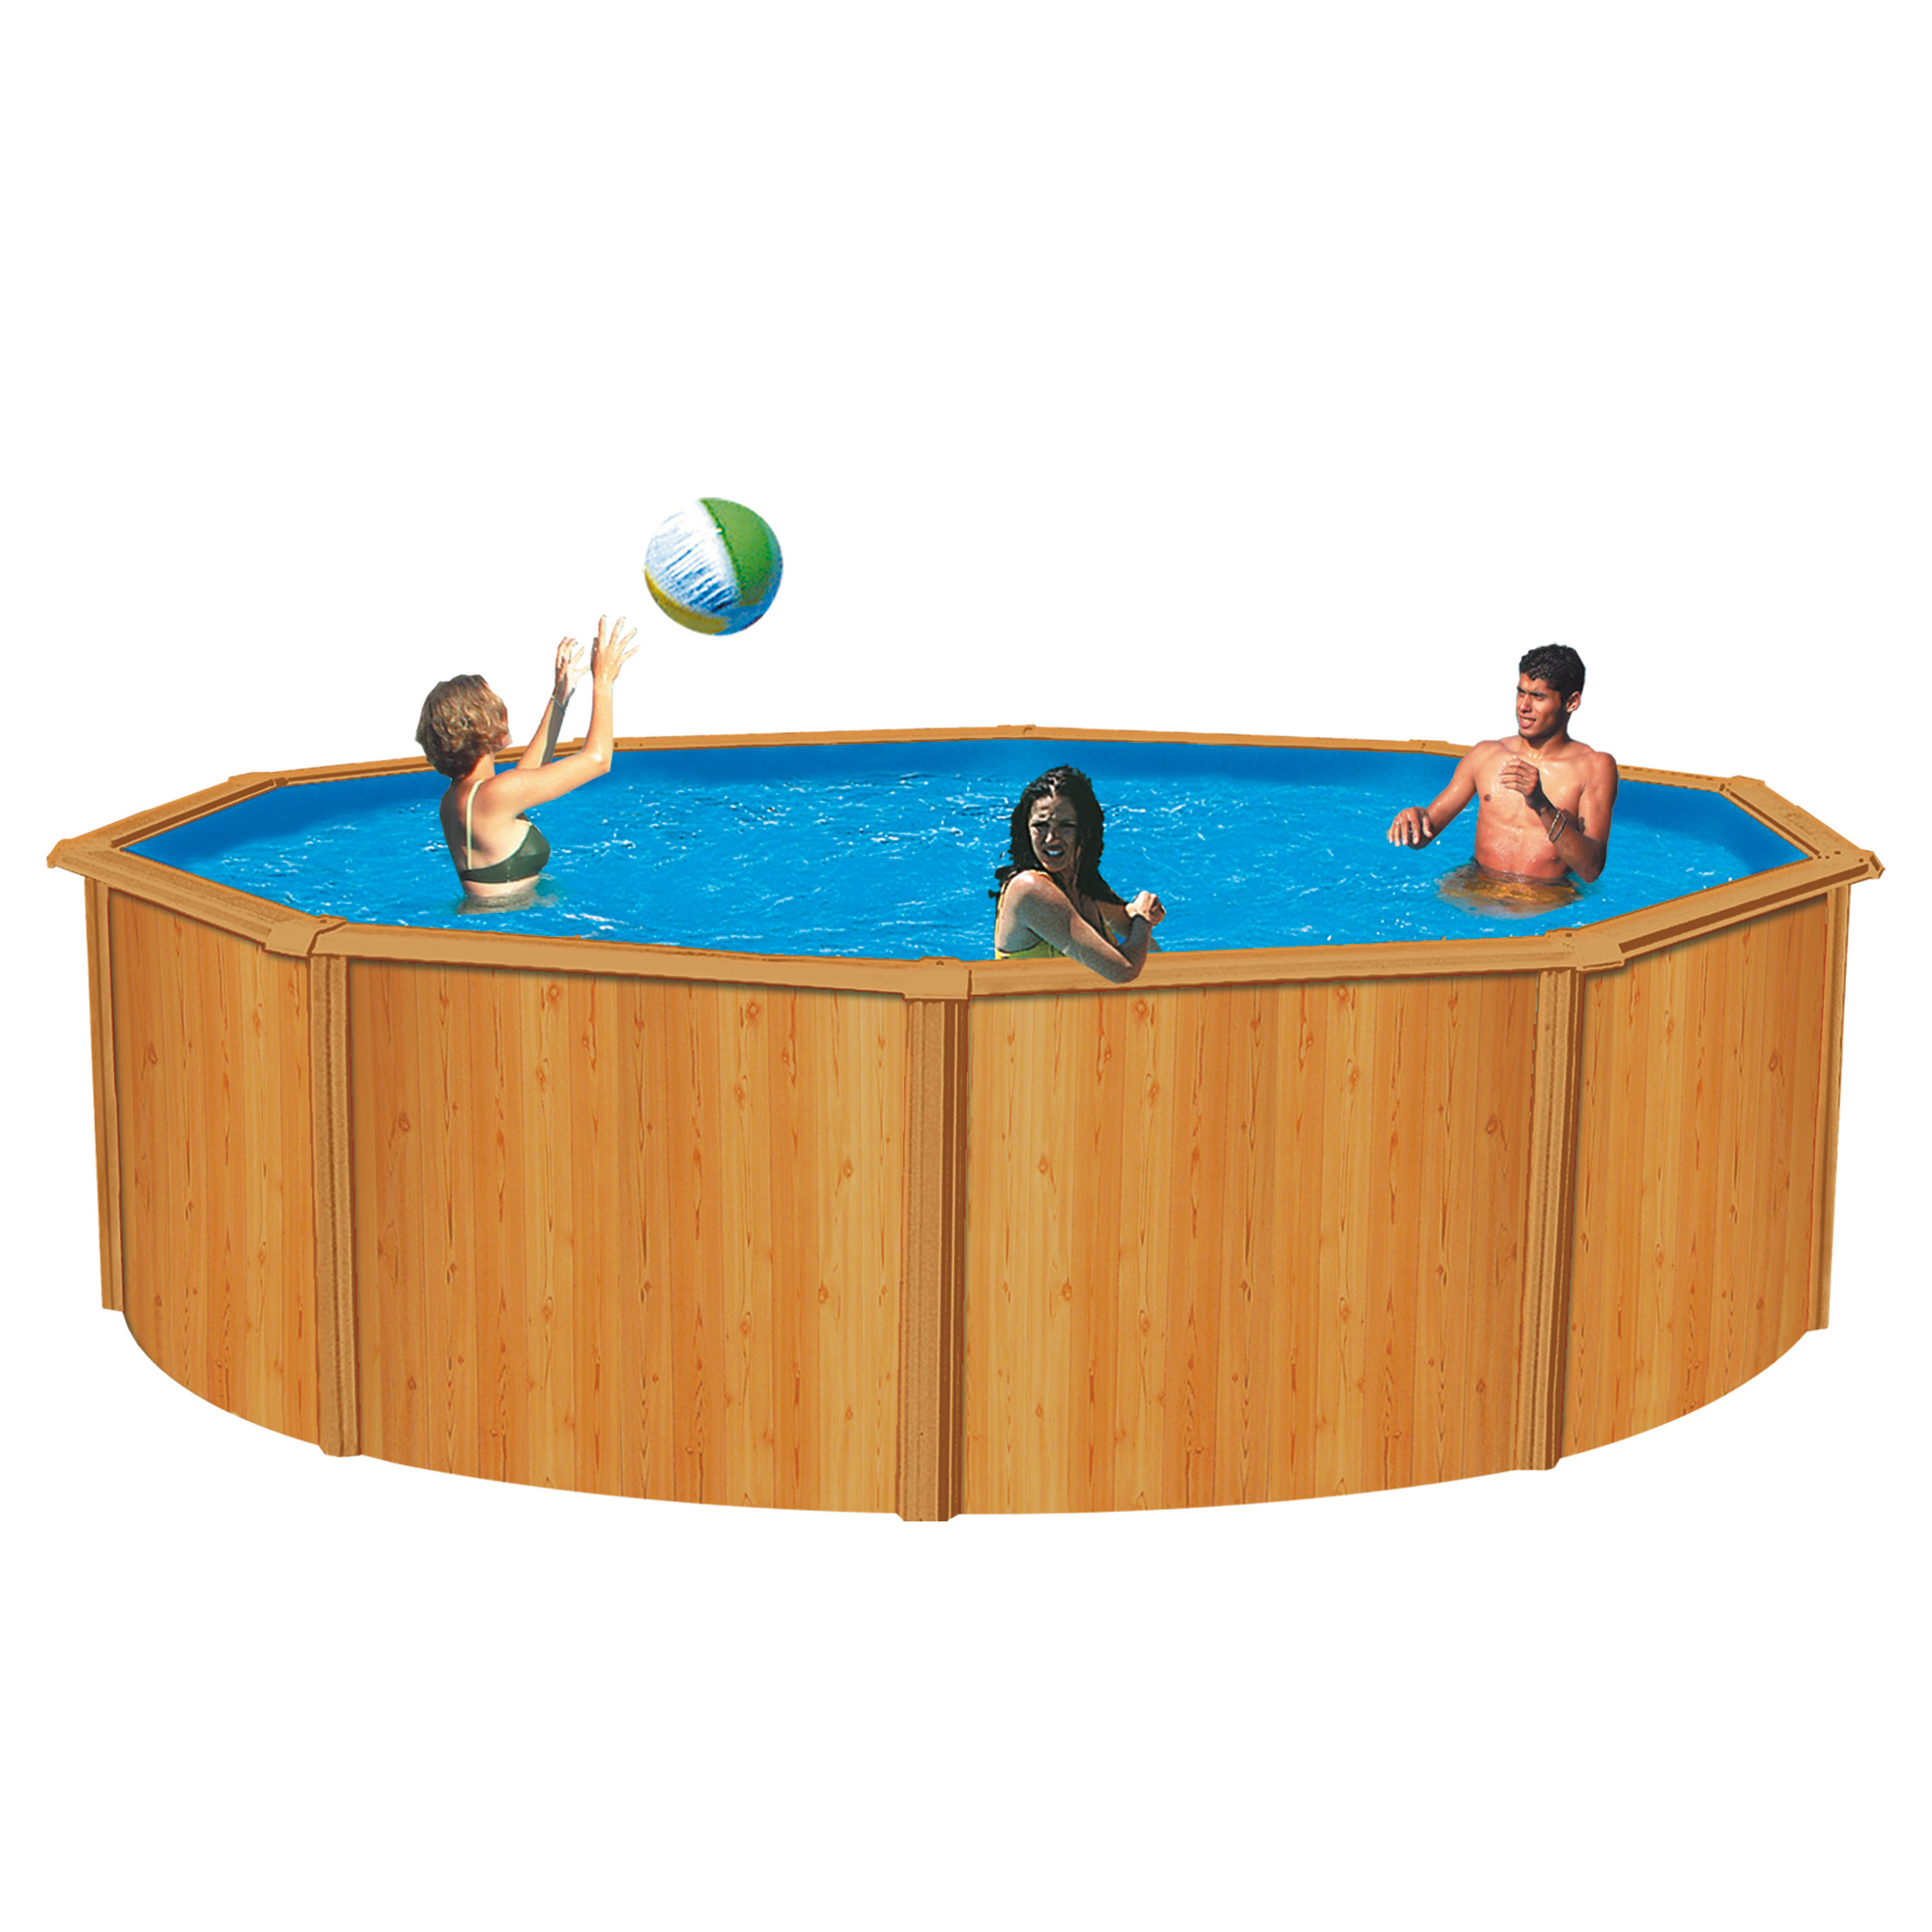 Trigano piscine canyon aspect bois for Liner piscine 3 50 x 1 20